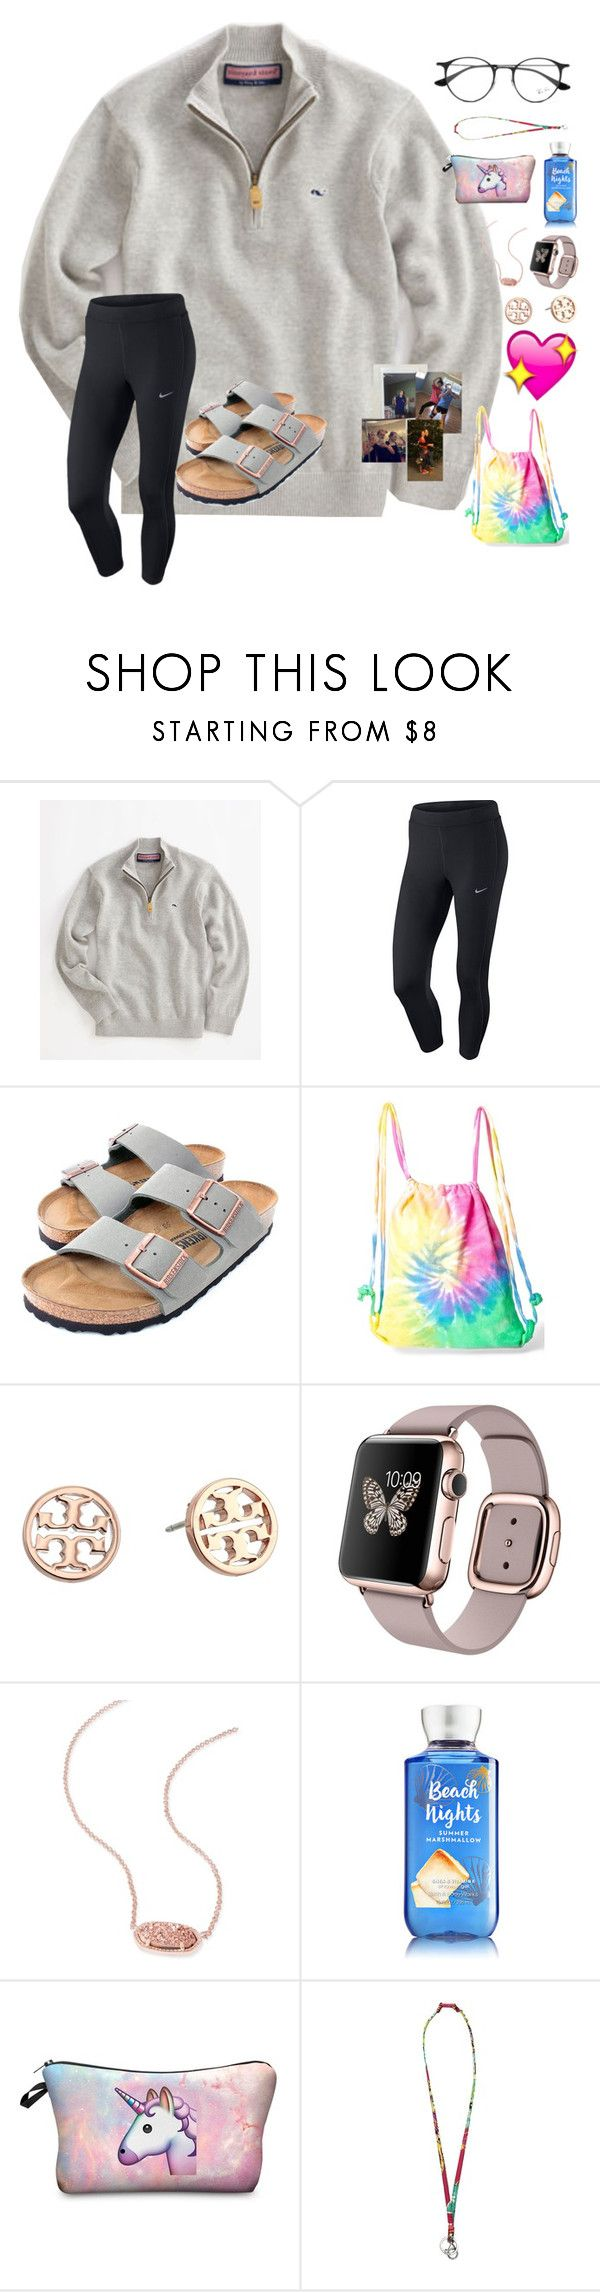 """~l-ayyyeeee-zy~"" by taybug2147 ❤ liked on Polyvore featuring Vineyard Vines, NIKE, Birkenstock, Colortone, Tory Burch, Kendra Scott, Vera Bradley and Ray-Ban"